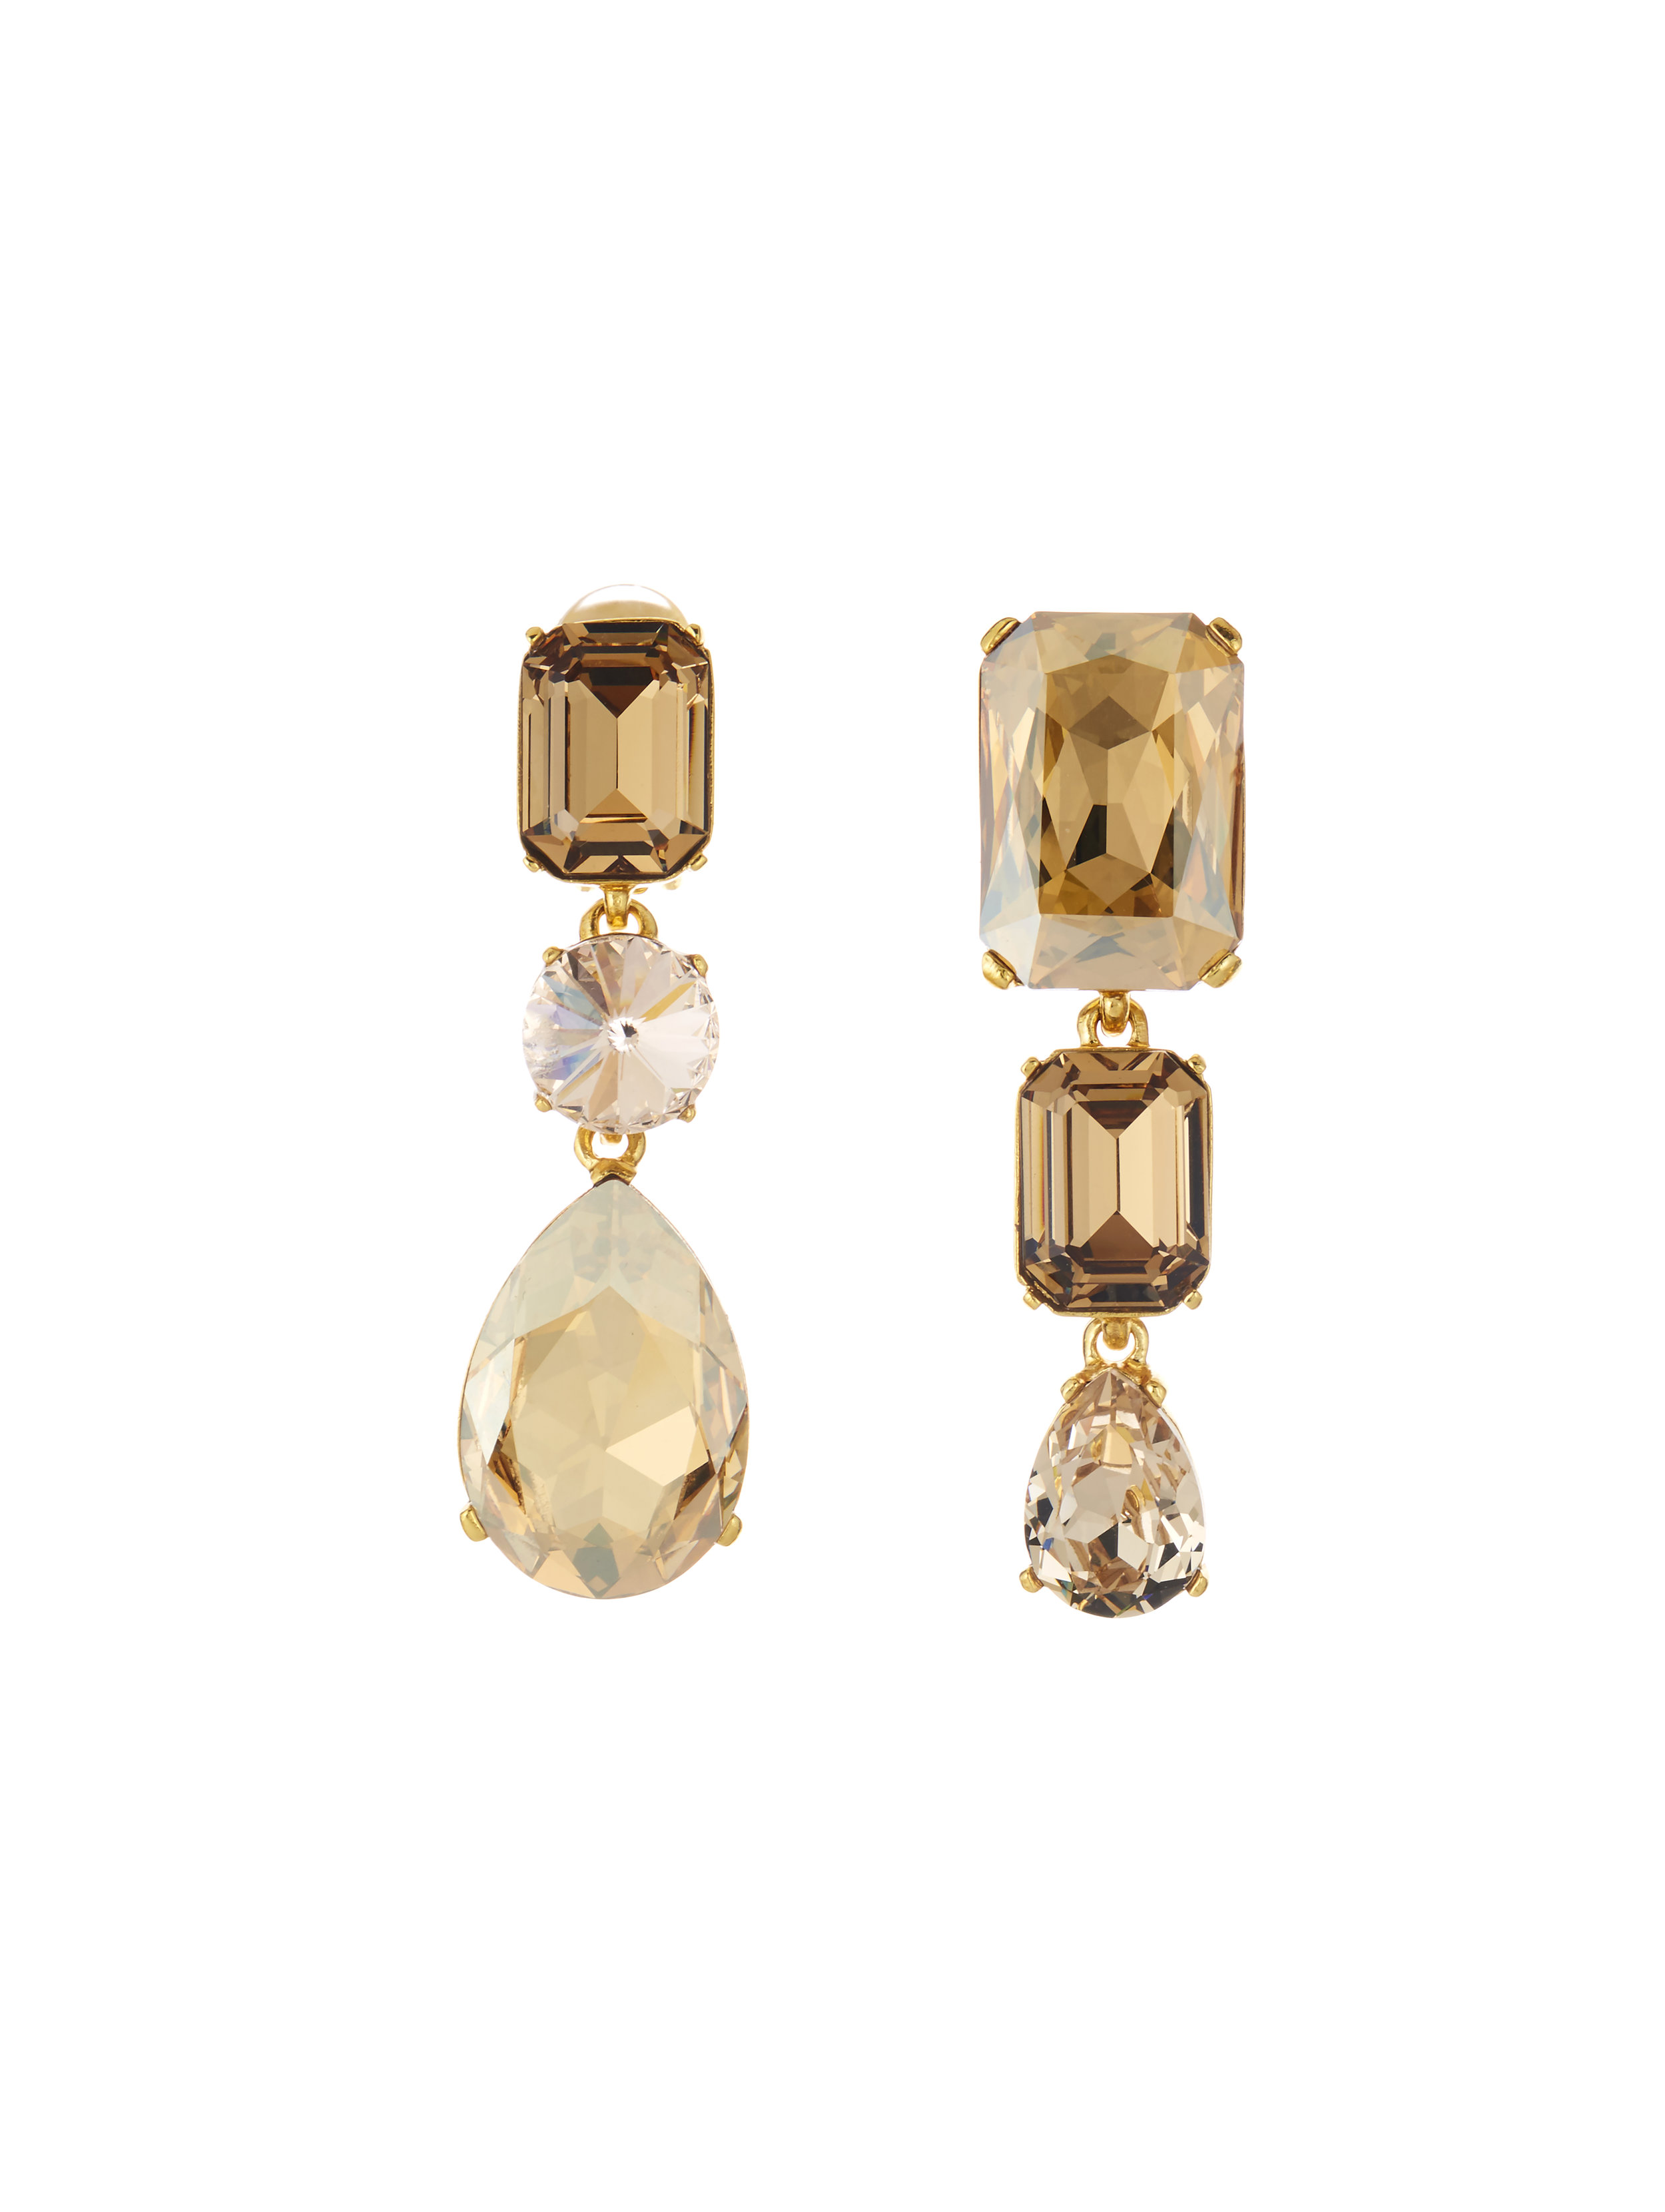 3. Oscar de la Renta Bold Crystal Earrings $450 from www.oscardelarenta.com